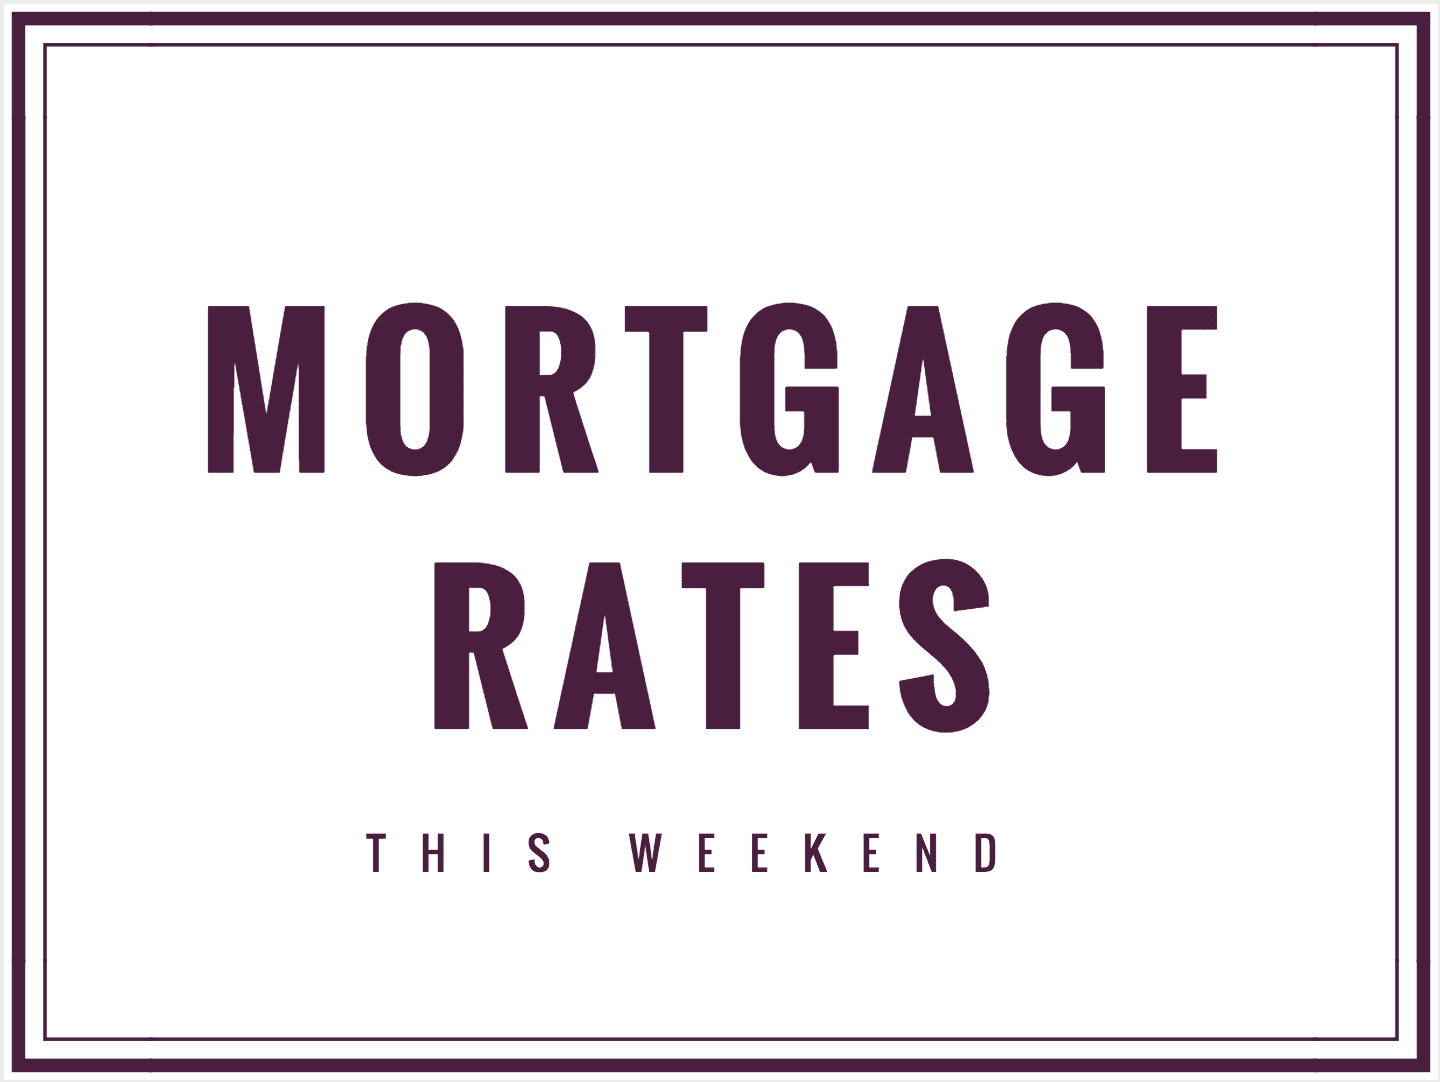 MORTGAGE RATES FOR JUN 30